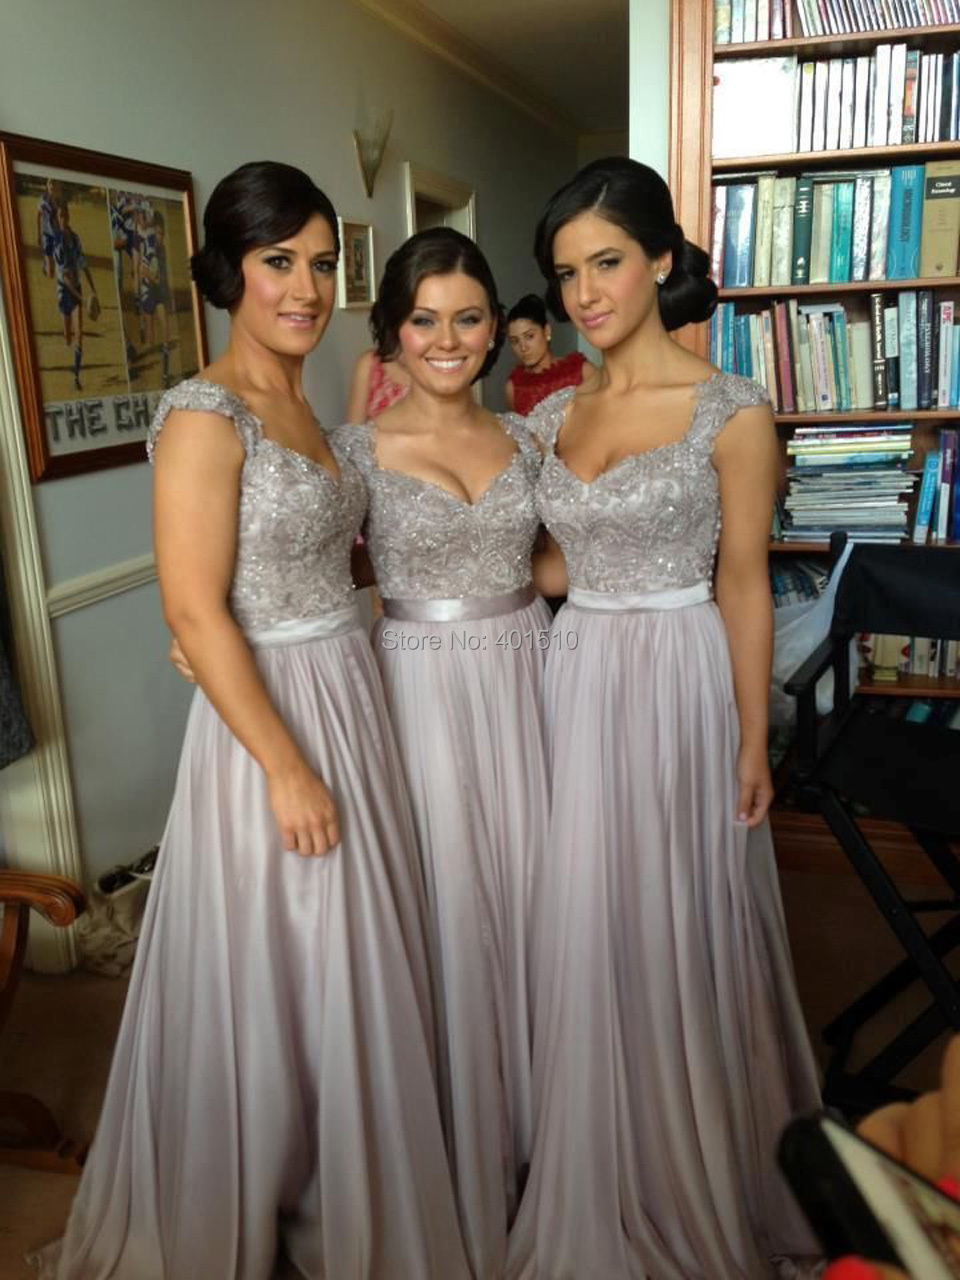 Floral bridesmaid dresses ireland ombrellifo Image collections